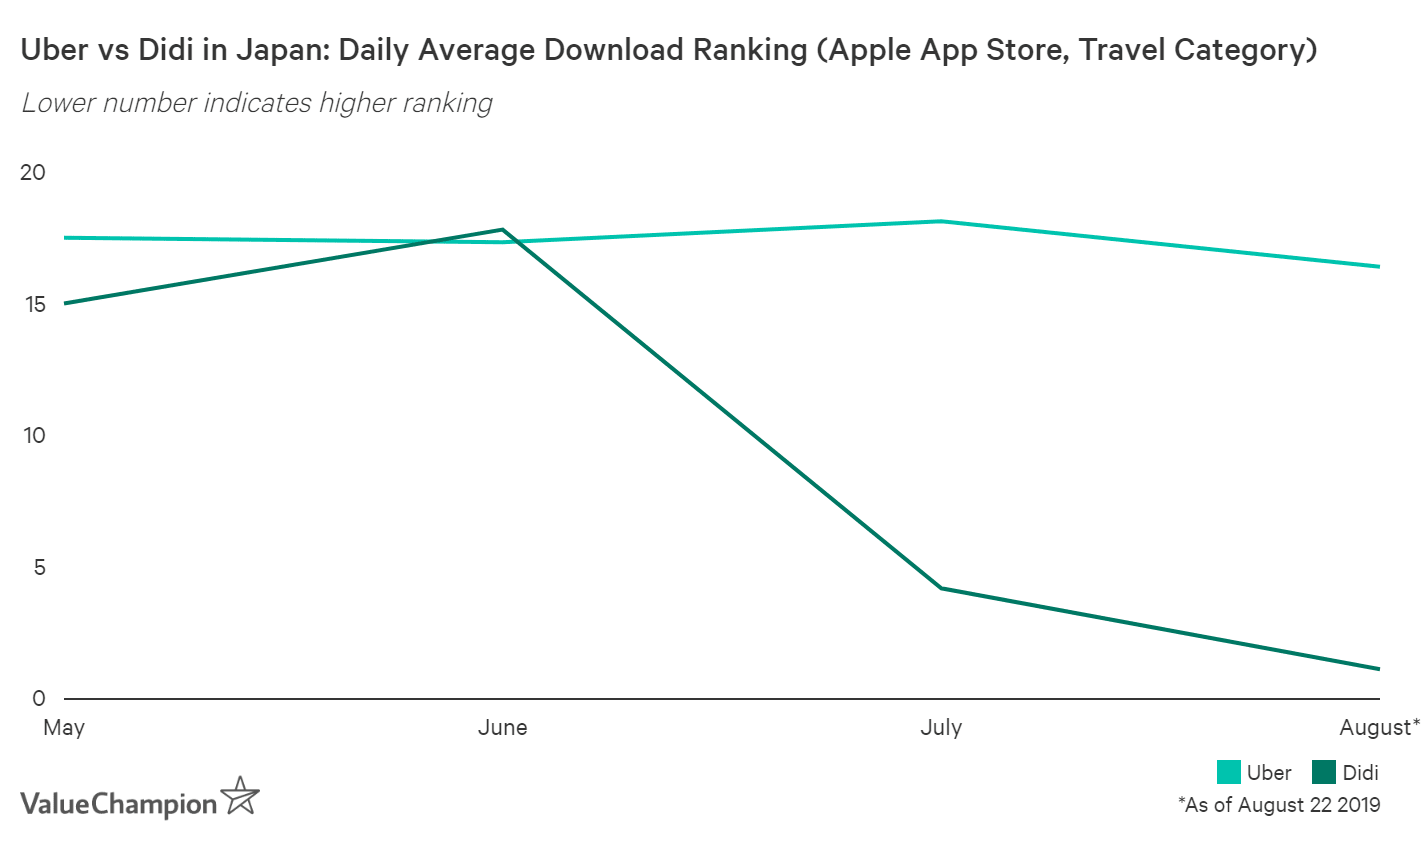 Didi suddenly became the #1 travel app in Japan, leaving Uber in the dust